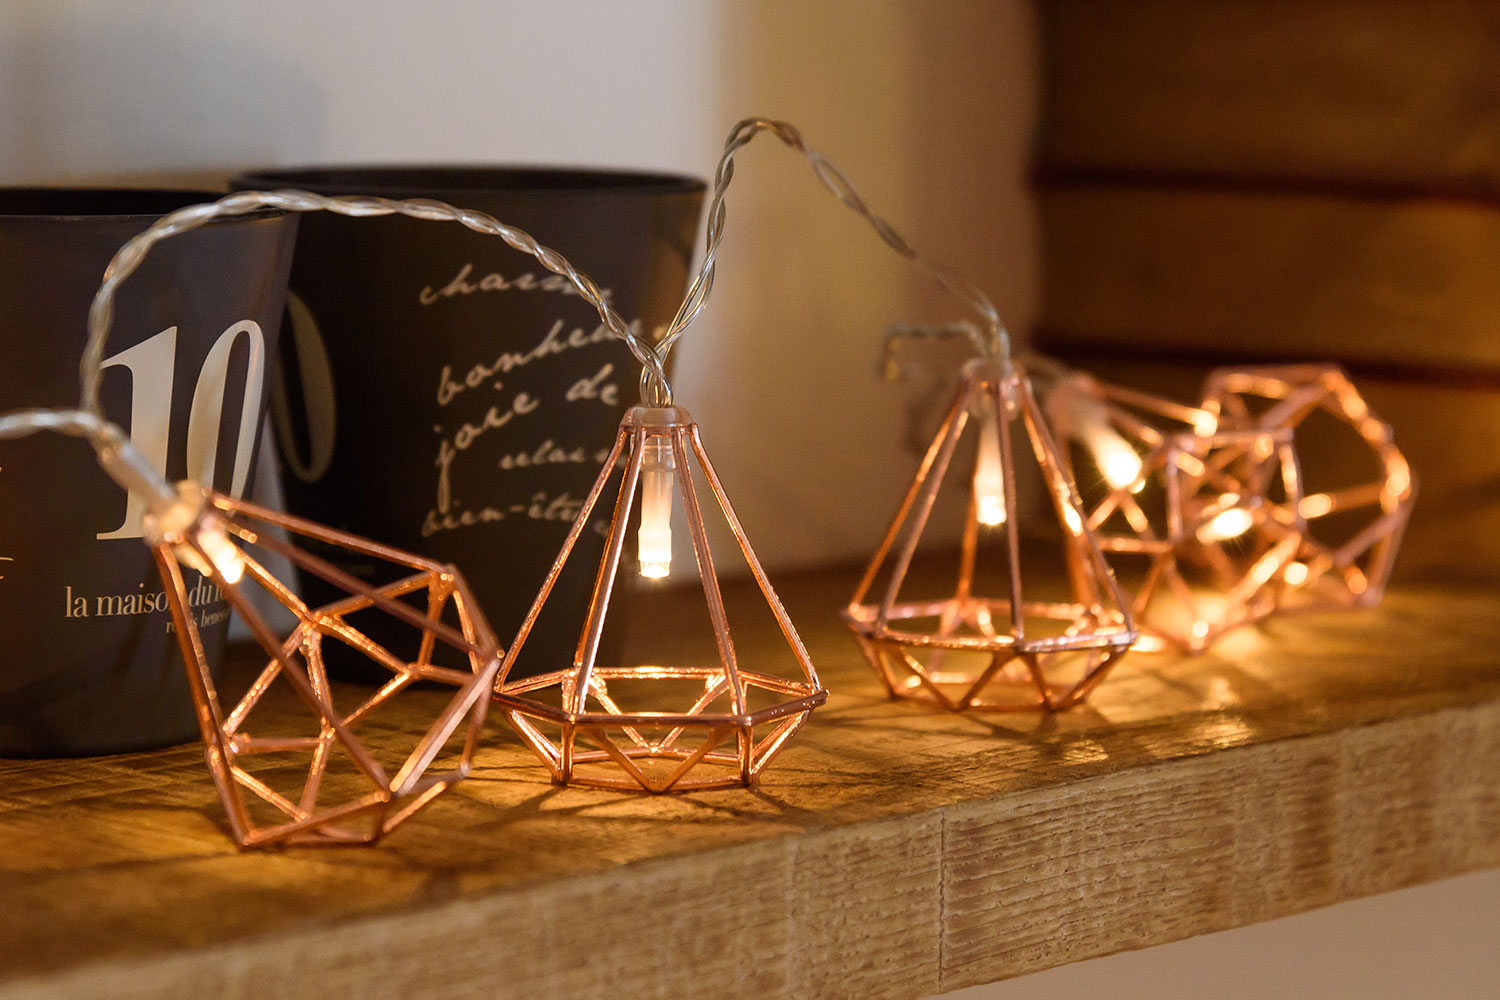 Idee per decorare e abbellire la casa con le luci decorative